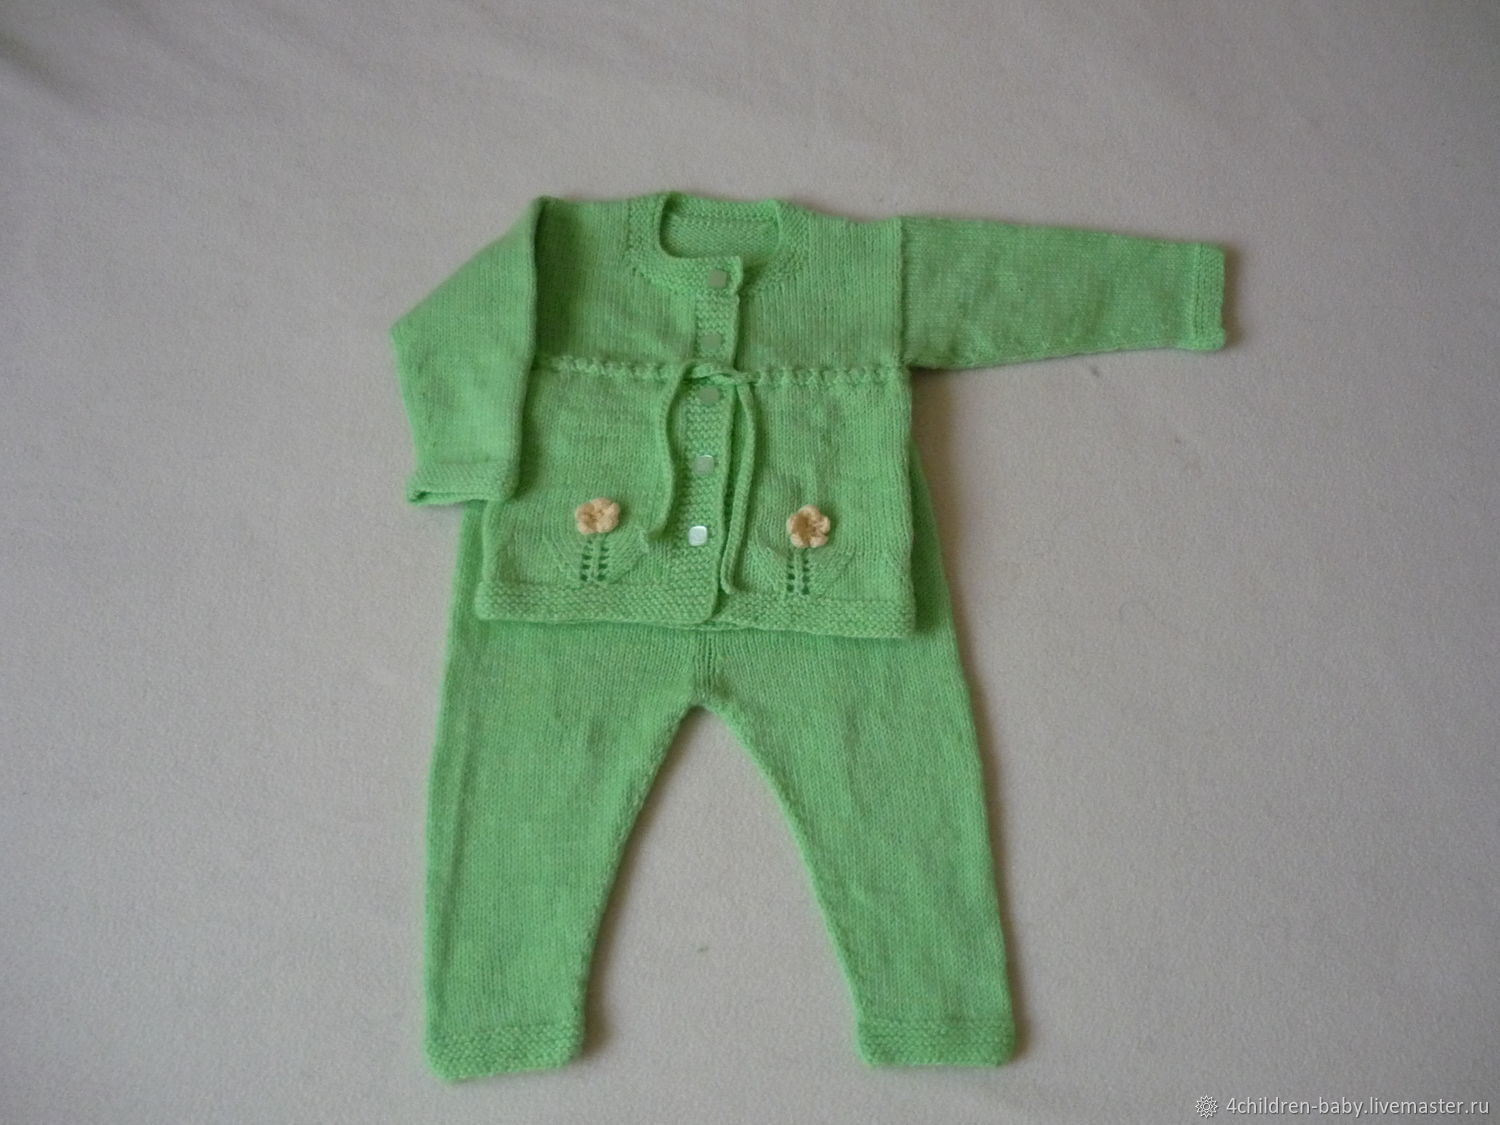 Knitted soft green set with flowers, Baby Clothing Sets, Moscow,  Фото №1